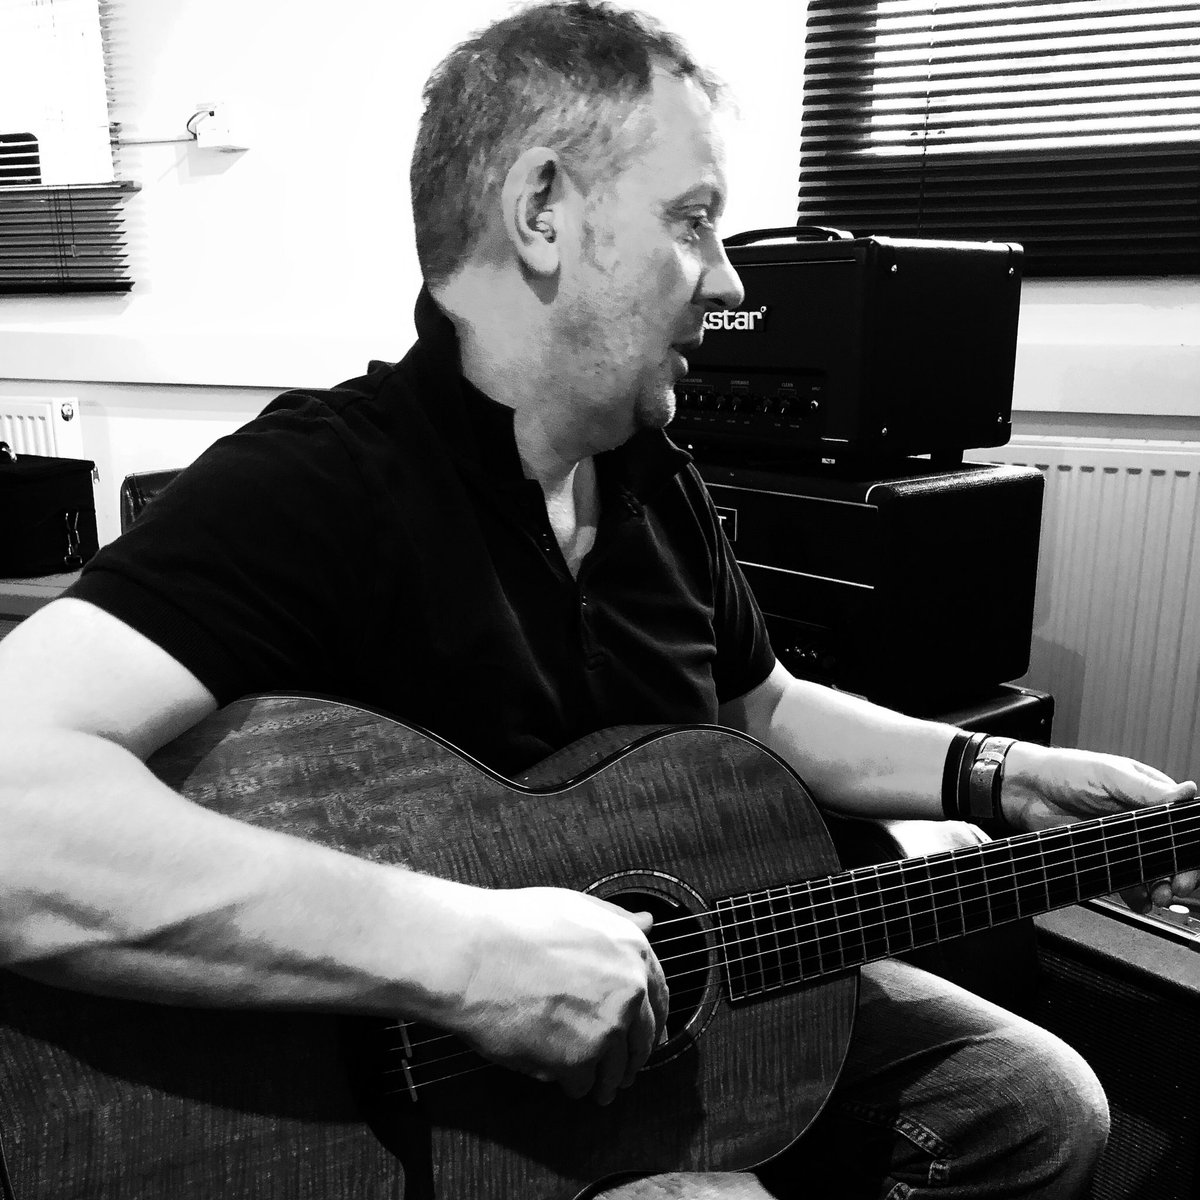 Great session today with Russ Graves! #Bradford #bradfordmusic #bradfordmusicscene #Leeds #leeds #leedsmusic #leedsmusicscene #singersongwriter #Yorkshire